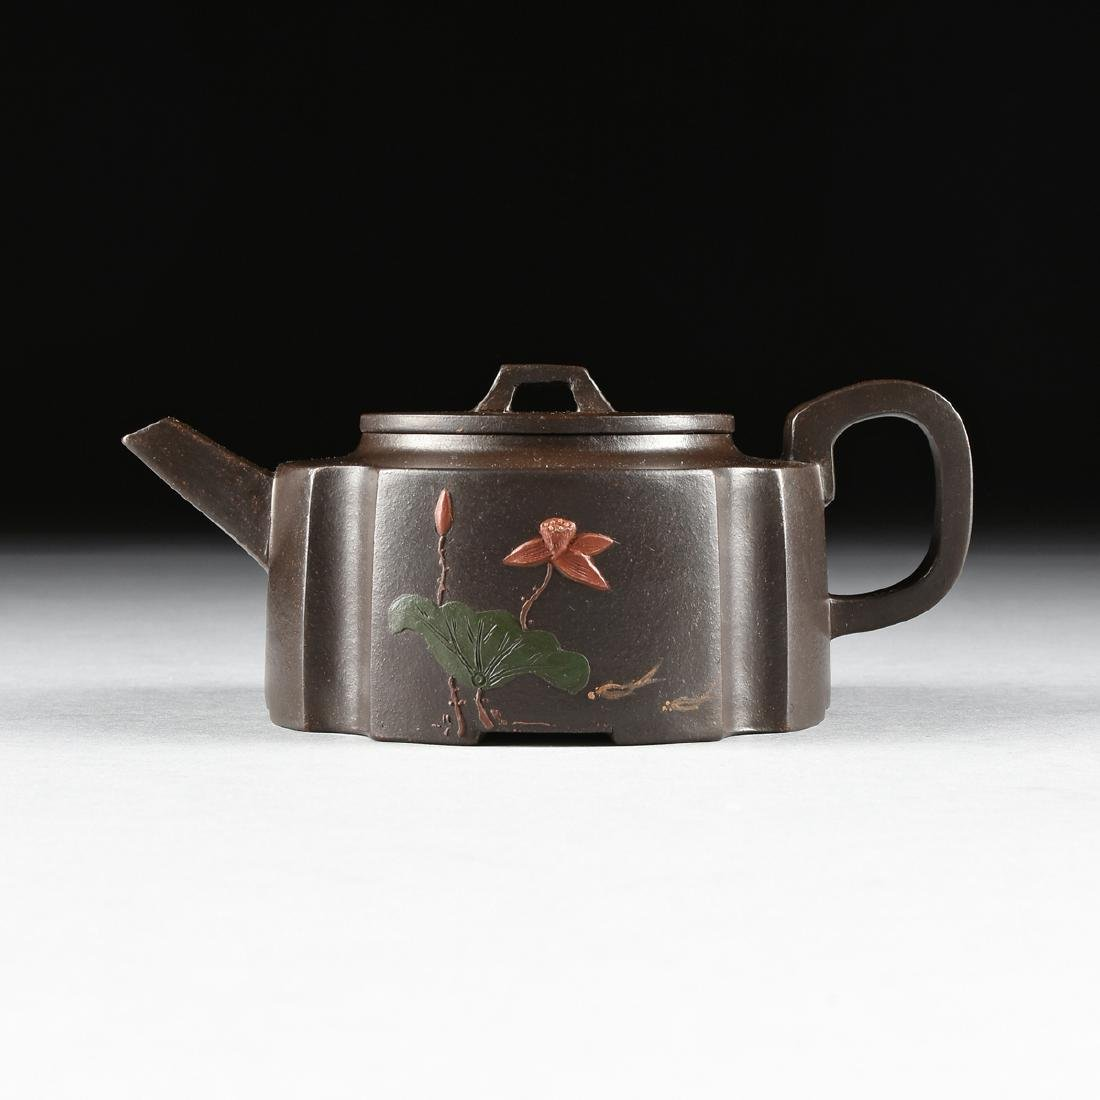 A CHINESE RED STONEWARE TEAPOT, YIXING PROVINCE,